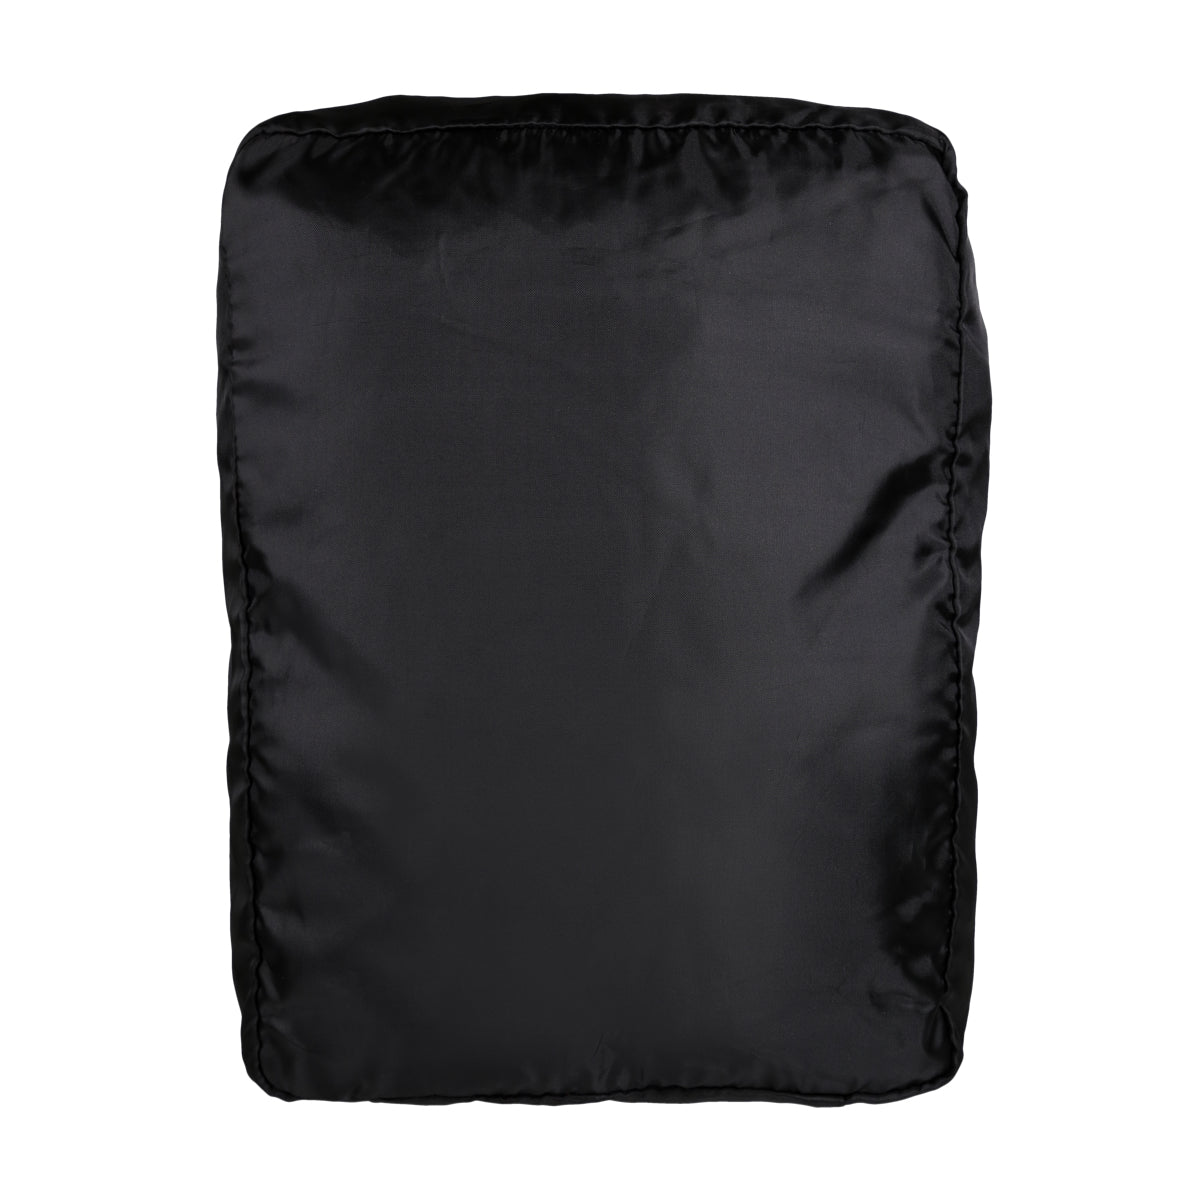 Collective Packing Cube Large - Black image 2